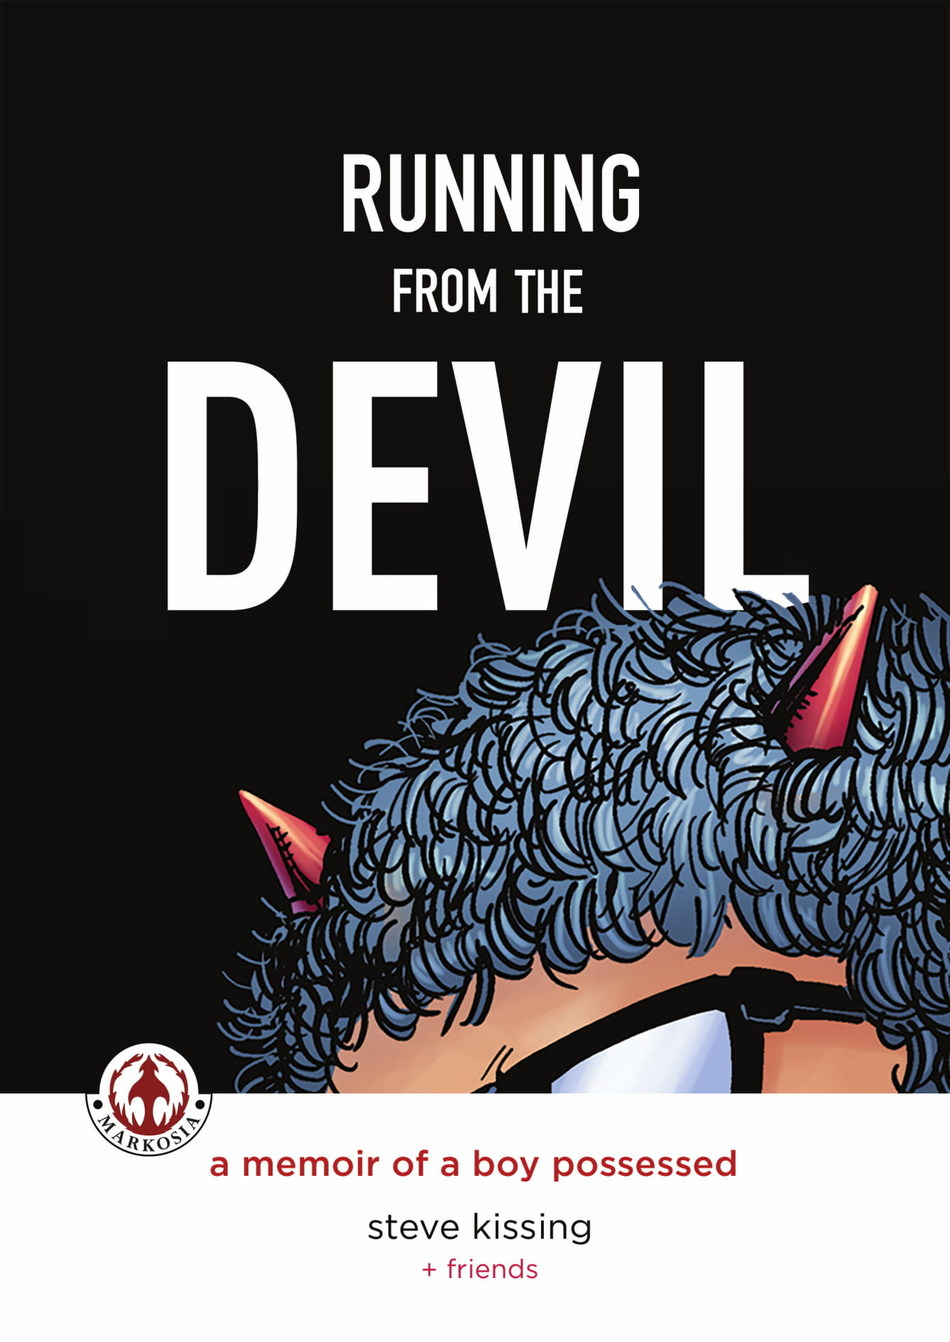 """Graphic memoir captures story of boy who hid his """"demonic possession"""" for years only to learn it was epilepsy"""